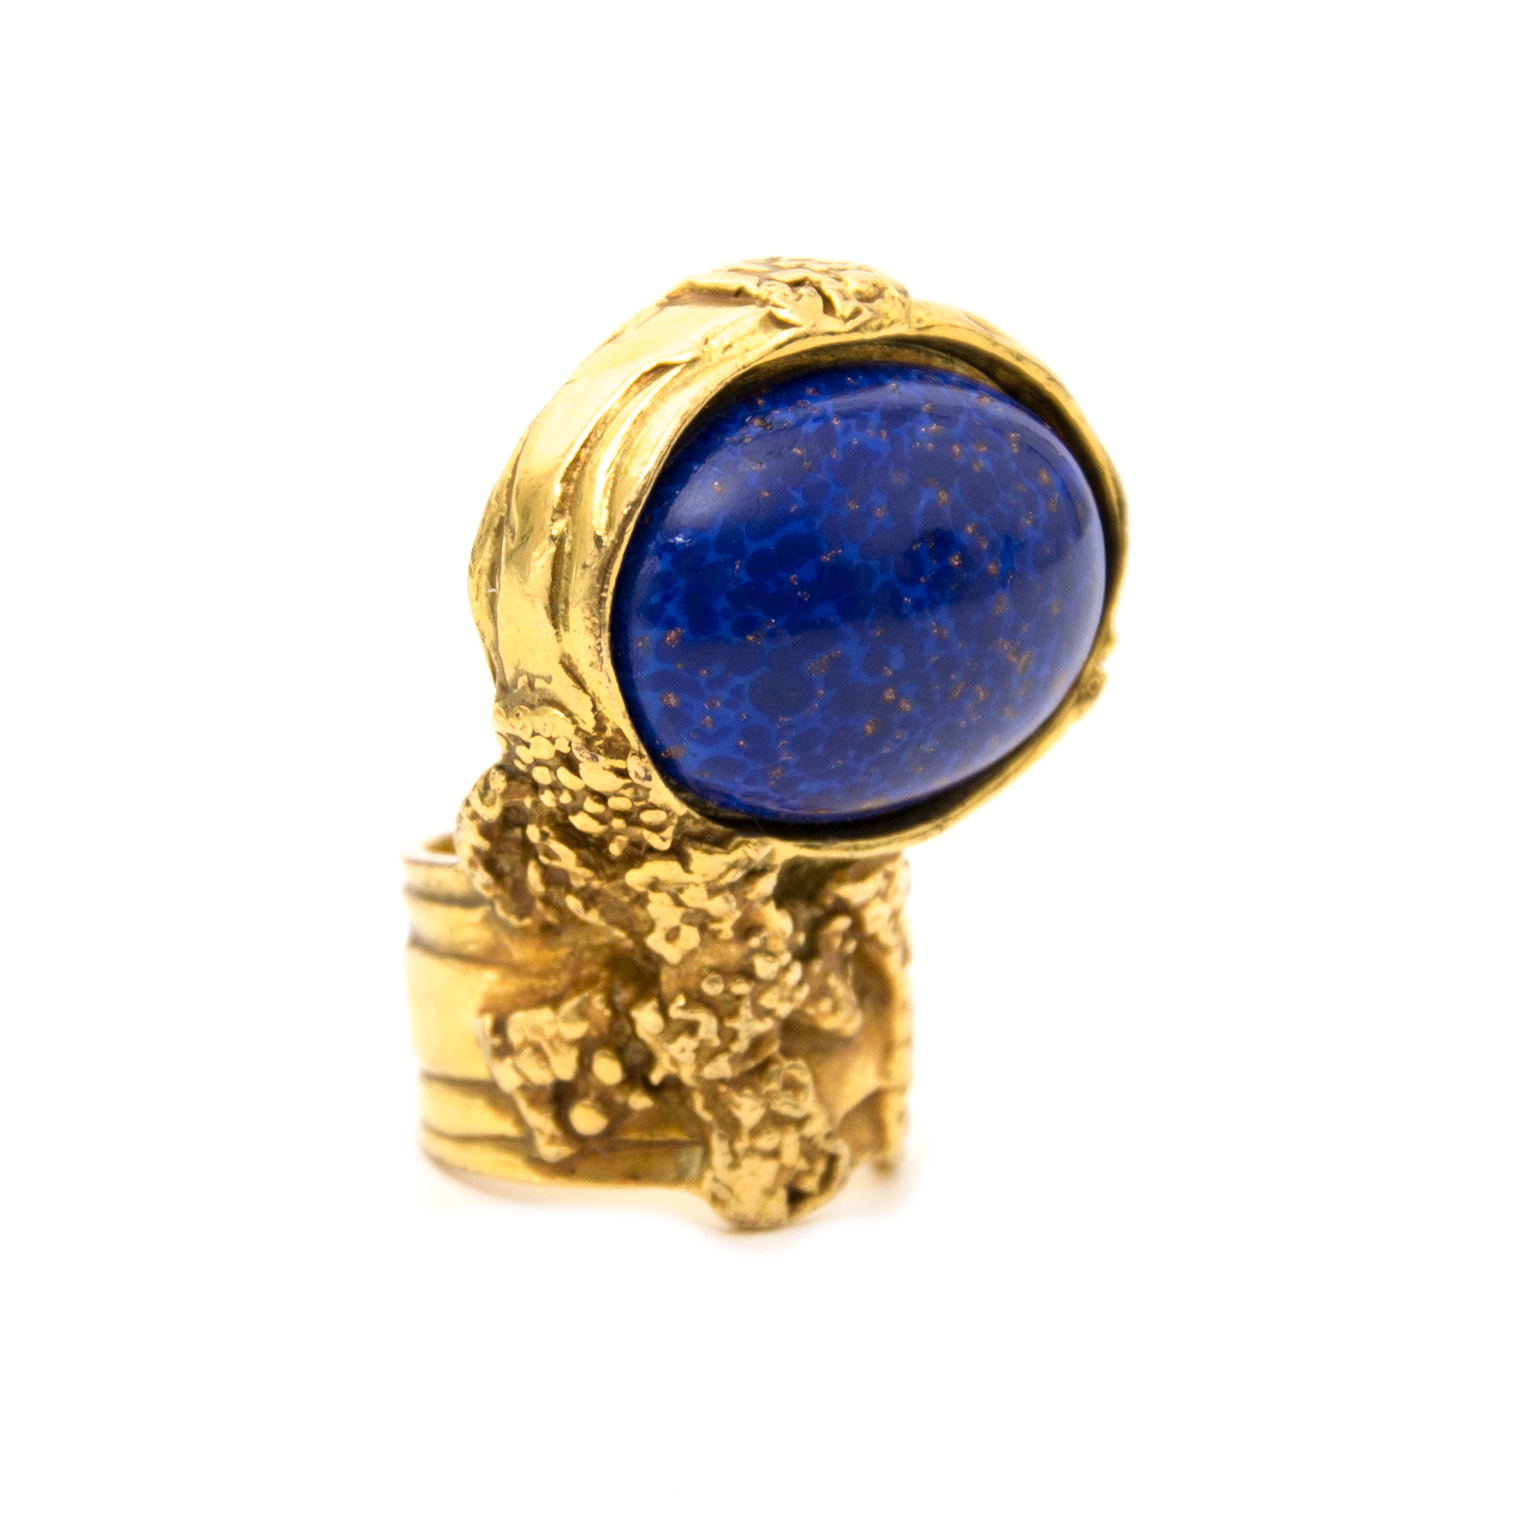 Yves saint laurent arty ring now online for the best price at labellov.com